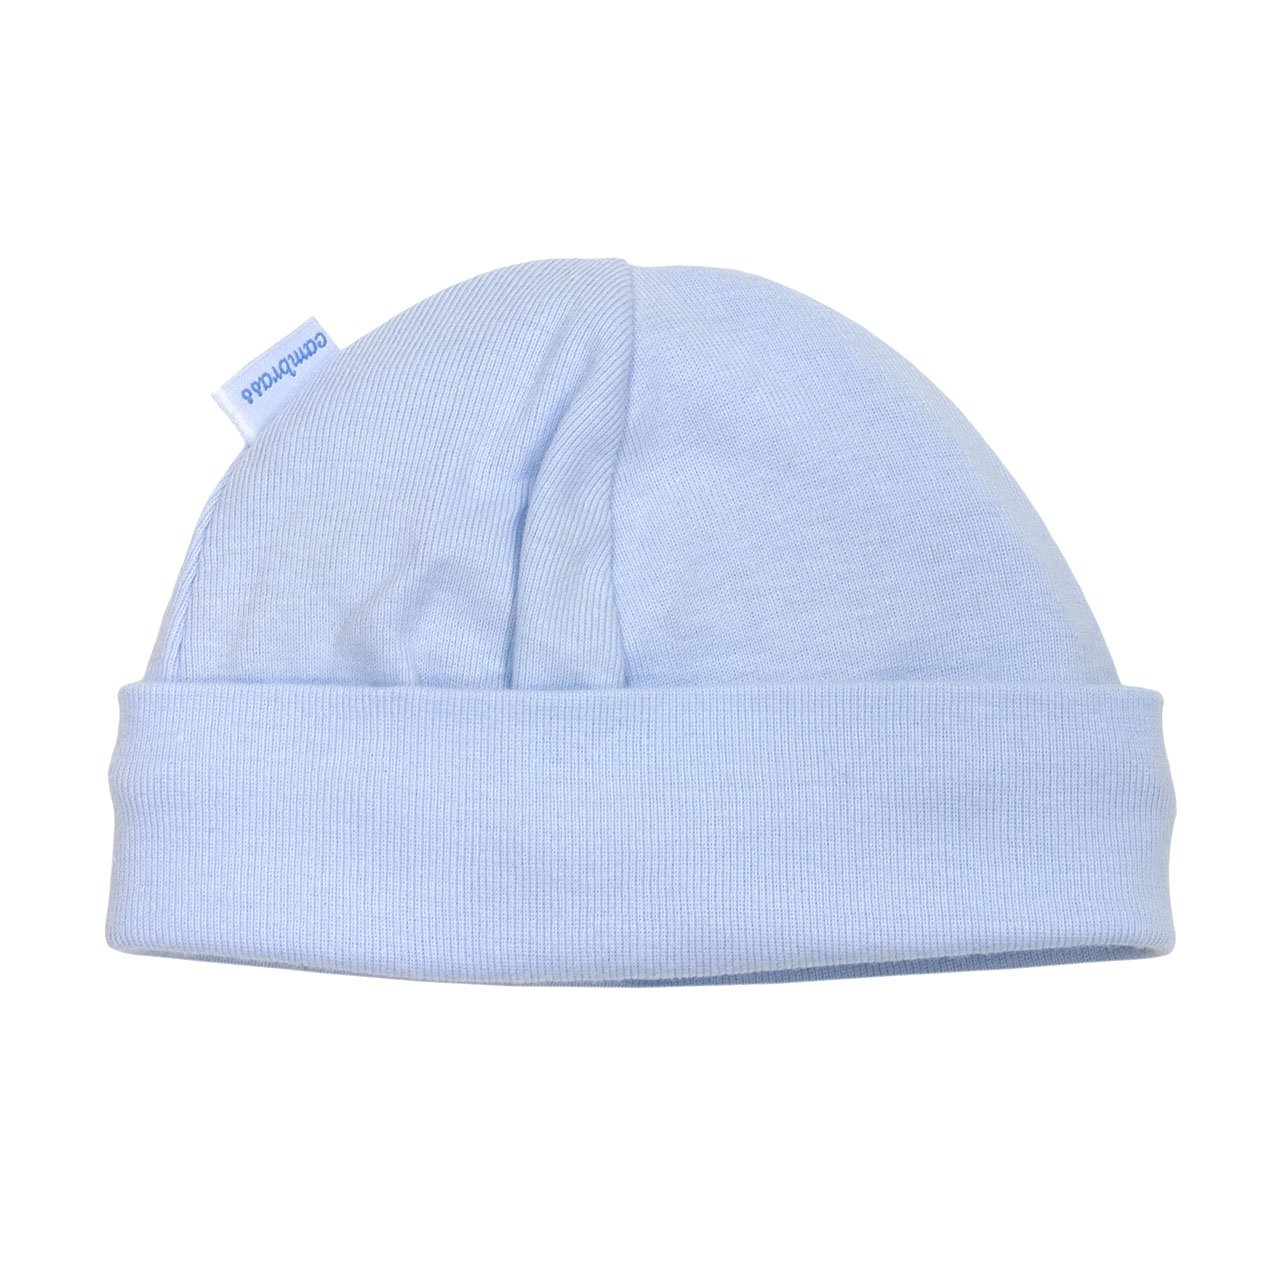 Cambrass Tricot Cotton Cap (White, 1-3 Months)